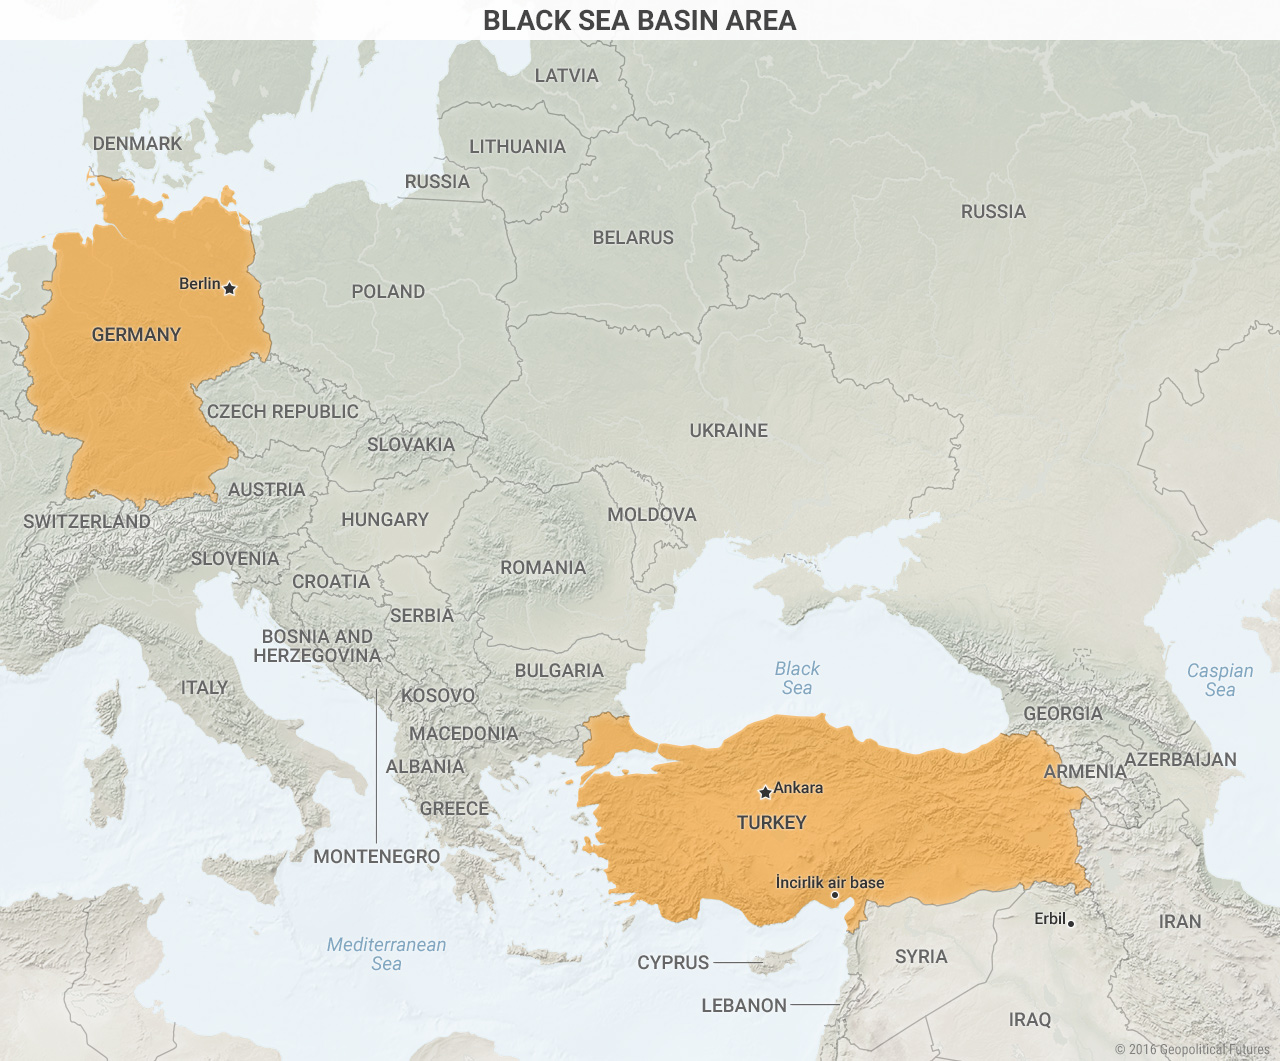 Black Sea Basin Area